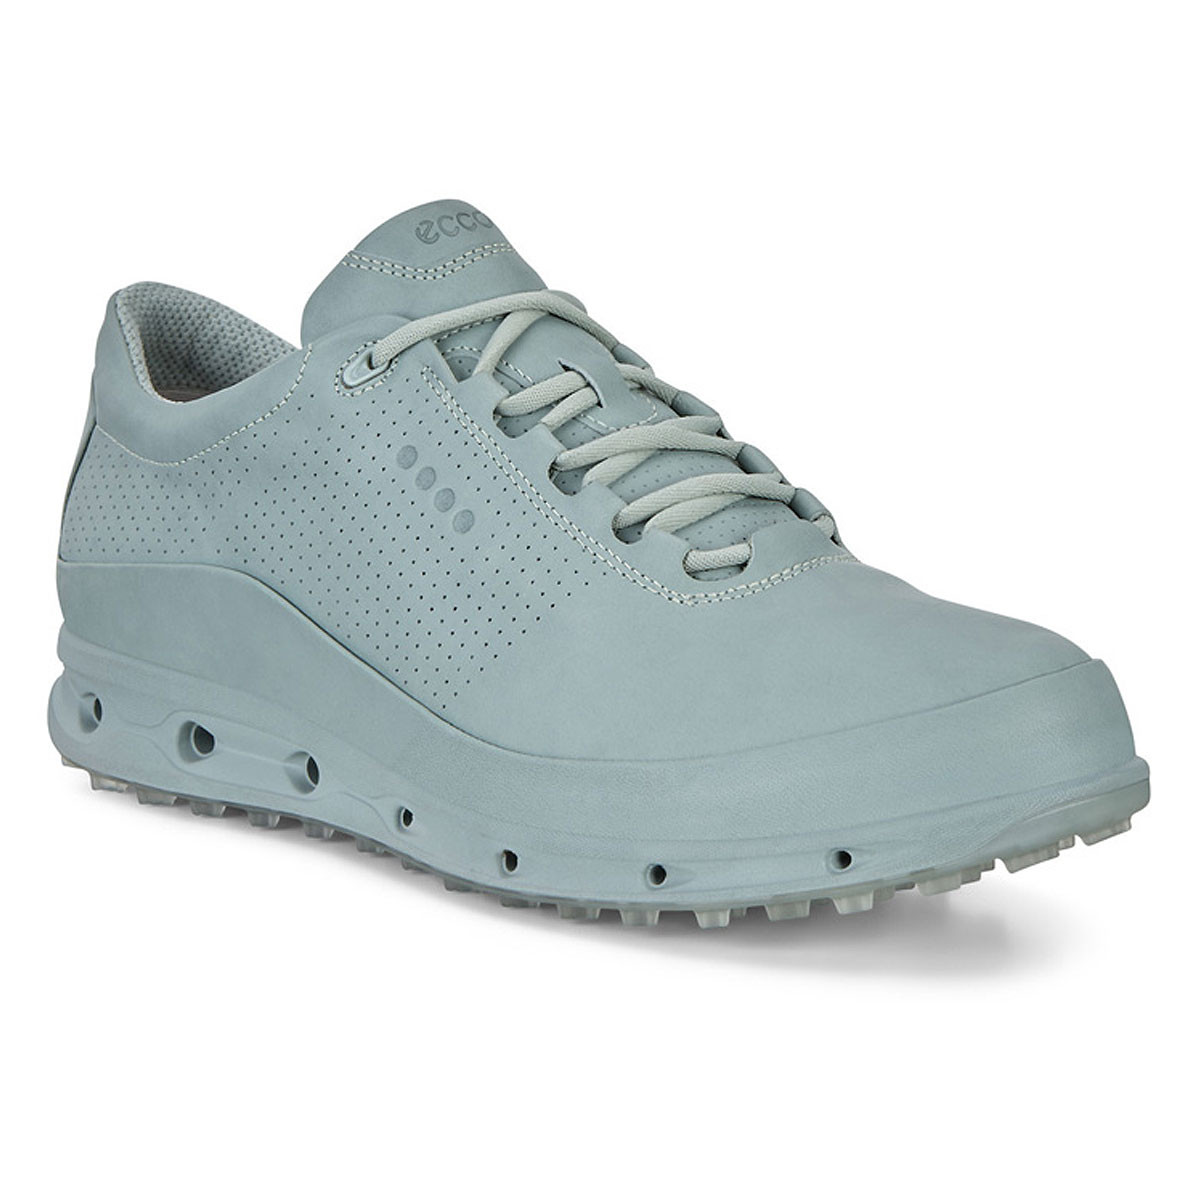 3dbe671463 Ecco Womens 2019 Cool Pro Waterproof Breathable Golf Shoes